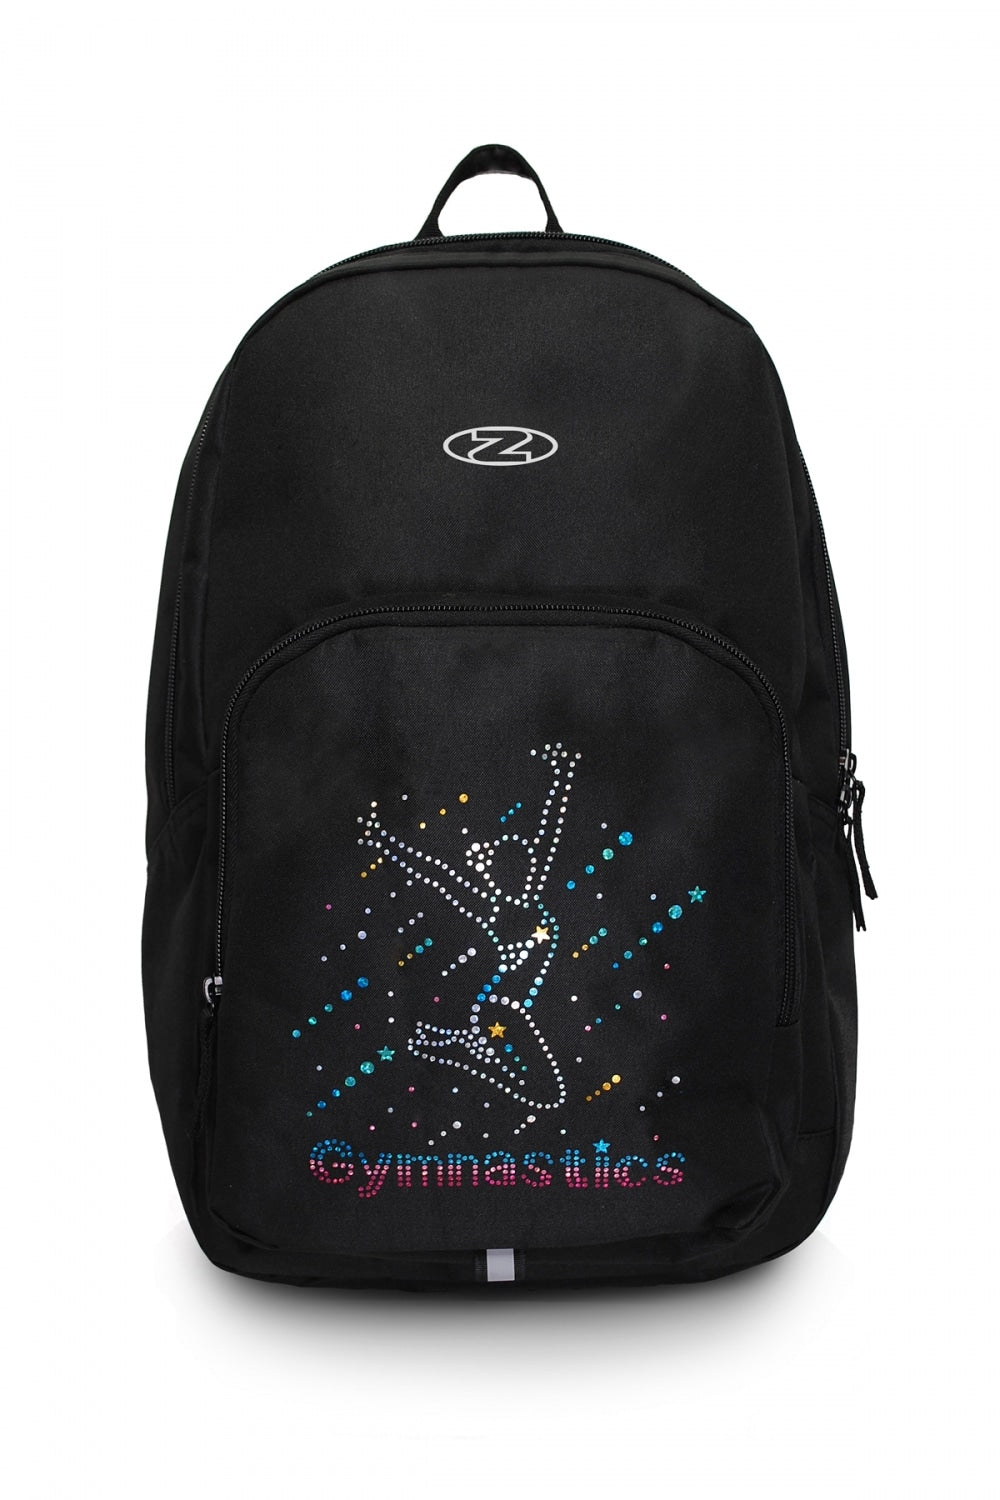 The Zone Gymnastics Backpack